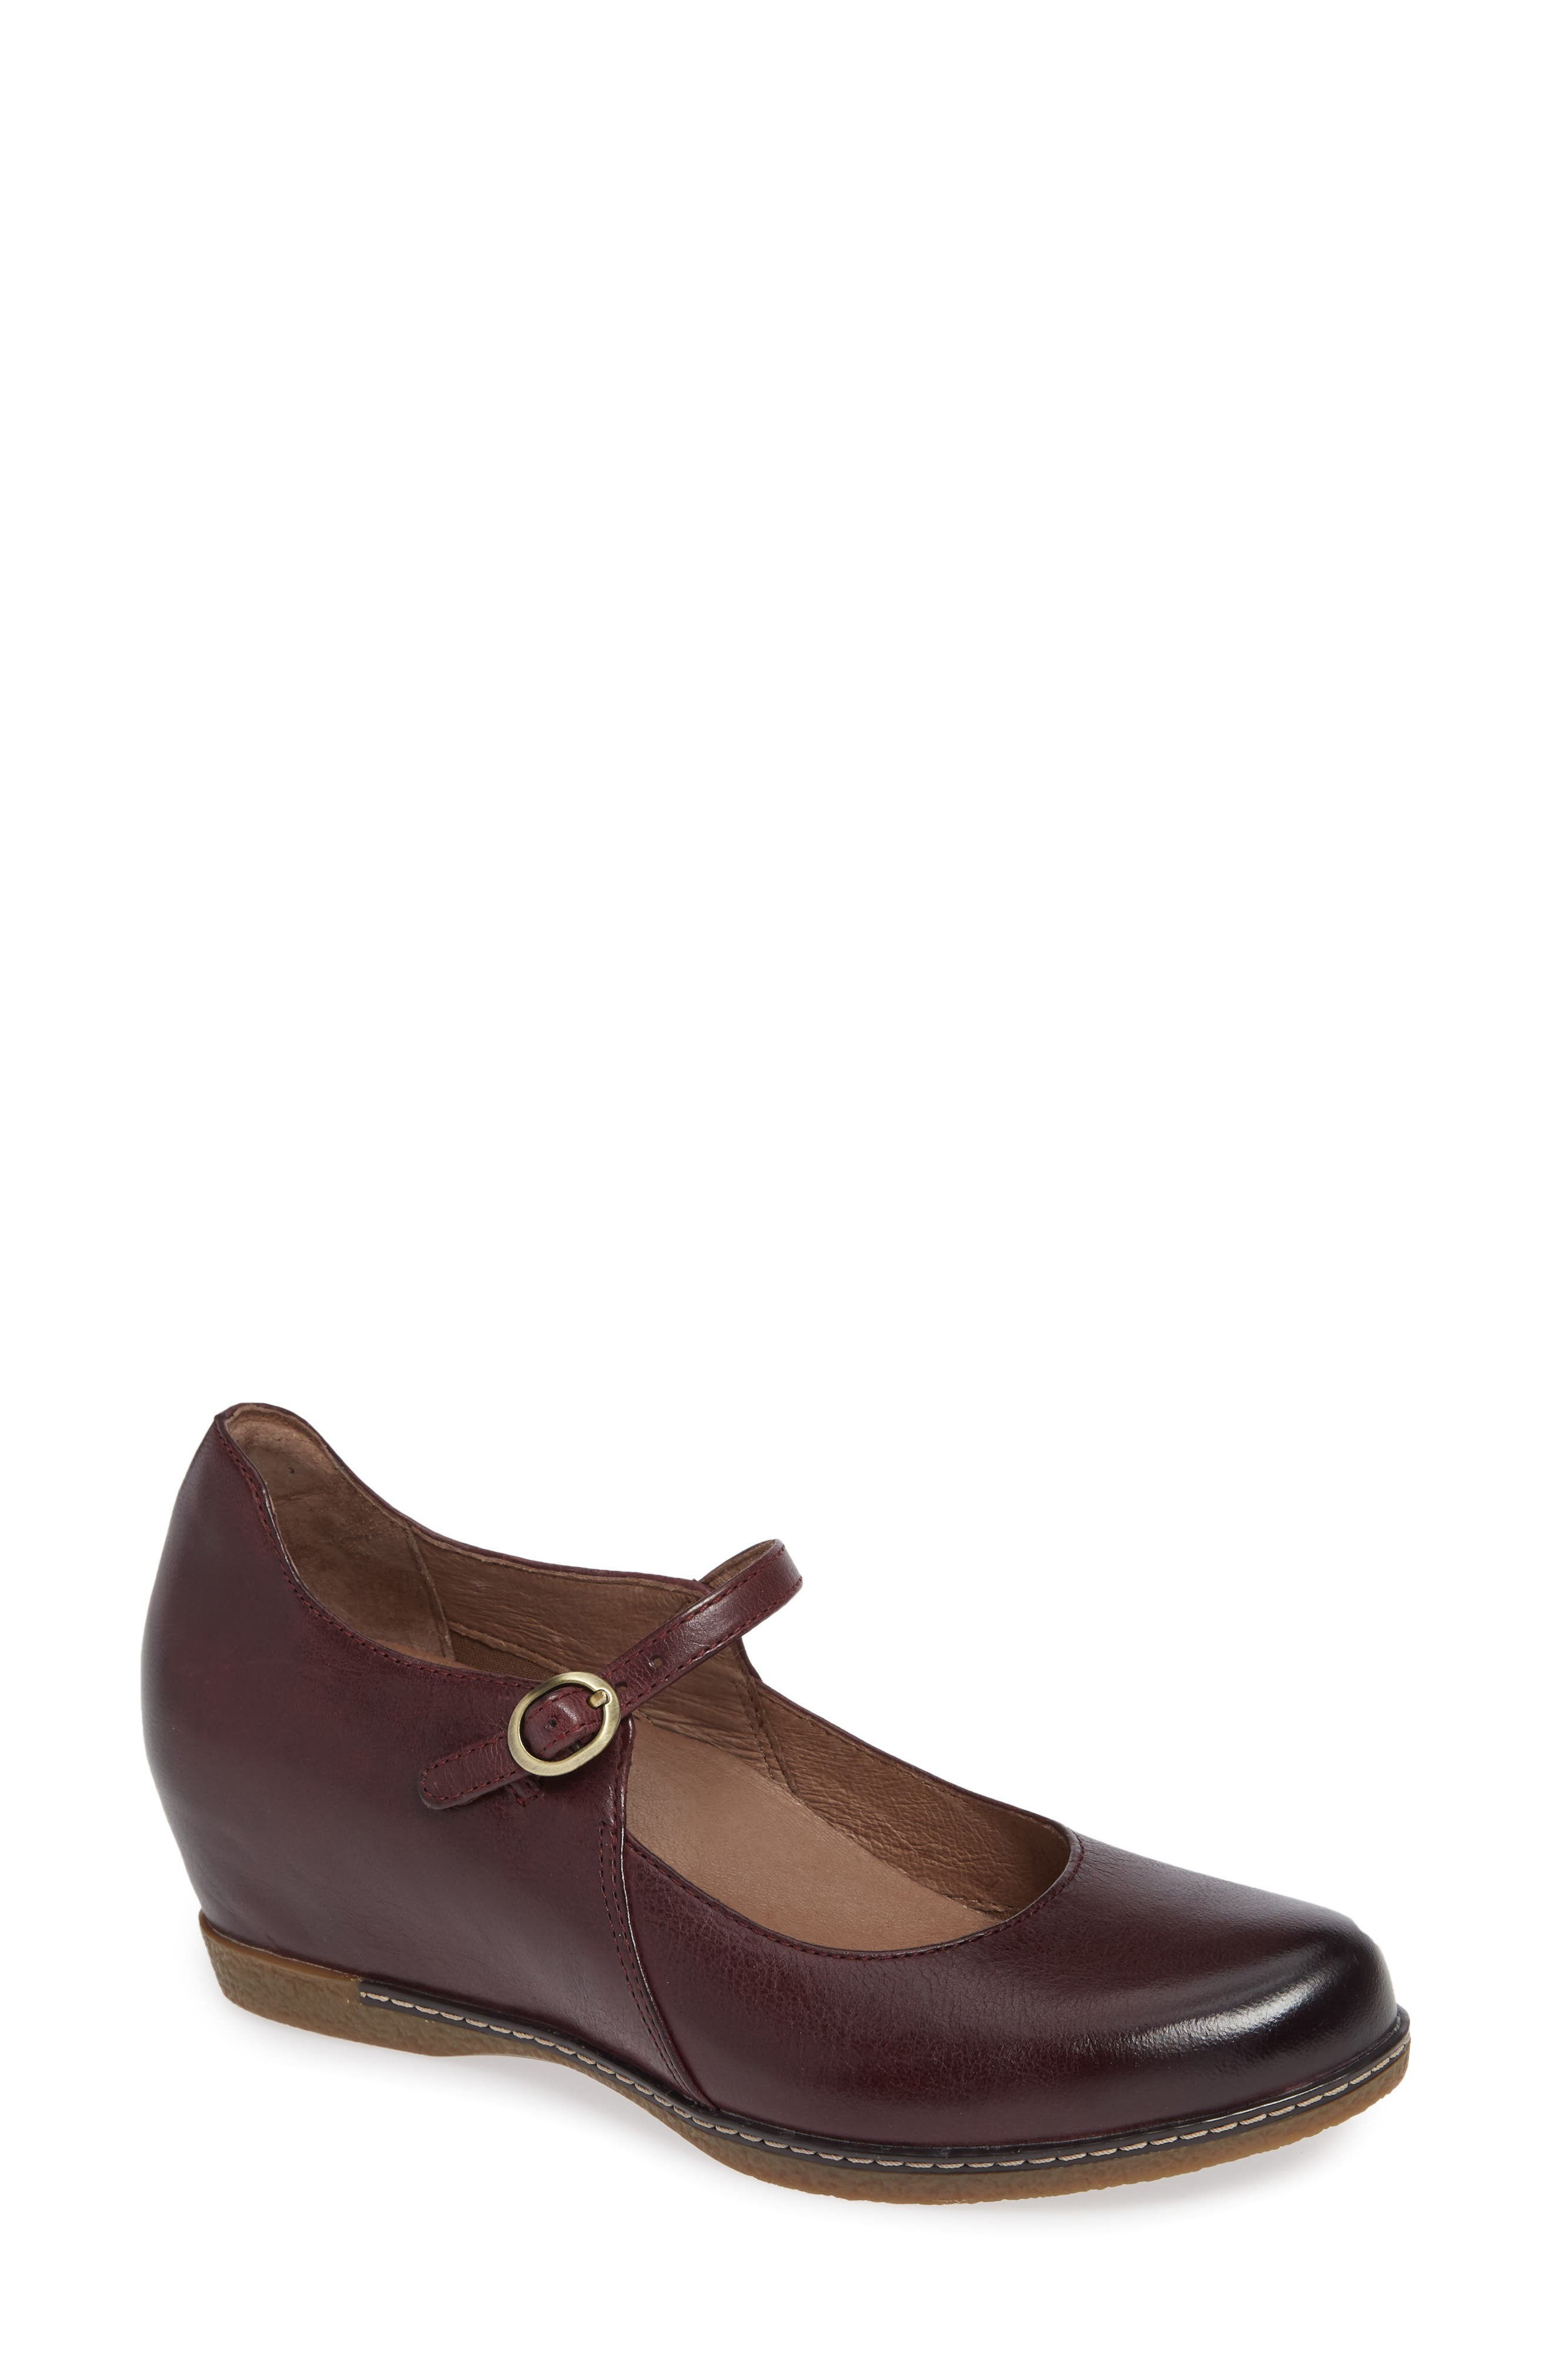 Loralie Mary Jane Wedge,                             Main thumbnail 1, color,                             Wine Burnished Leather